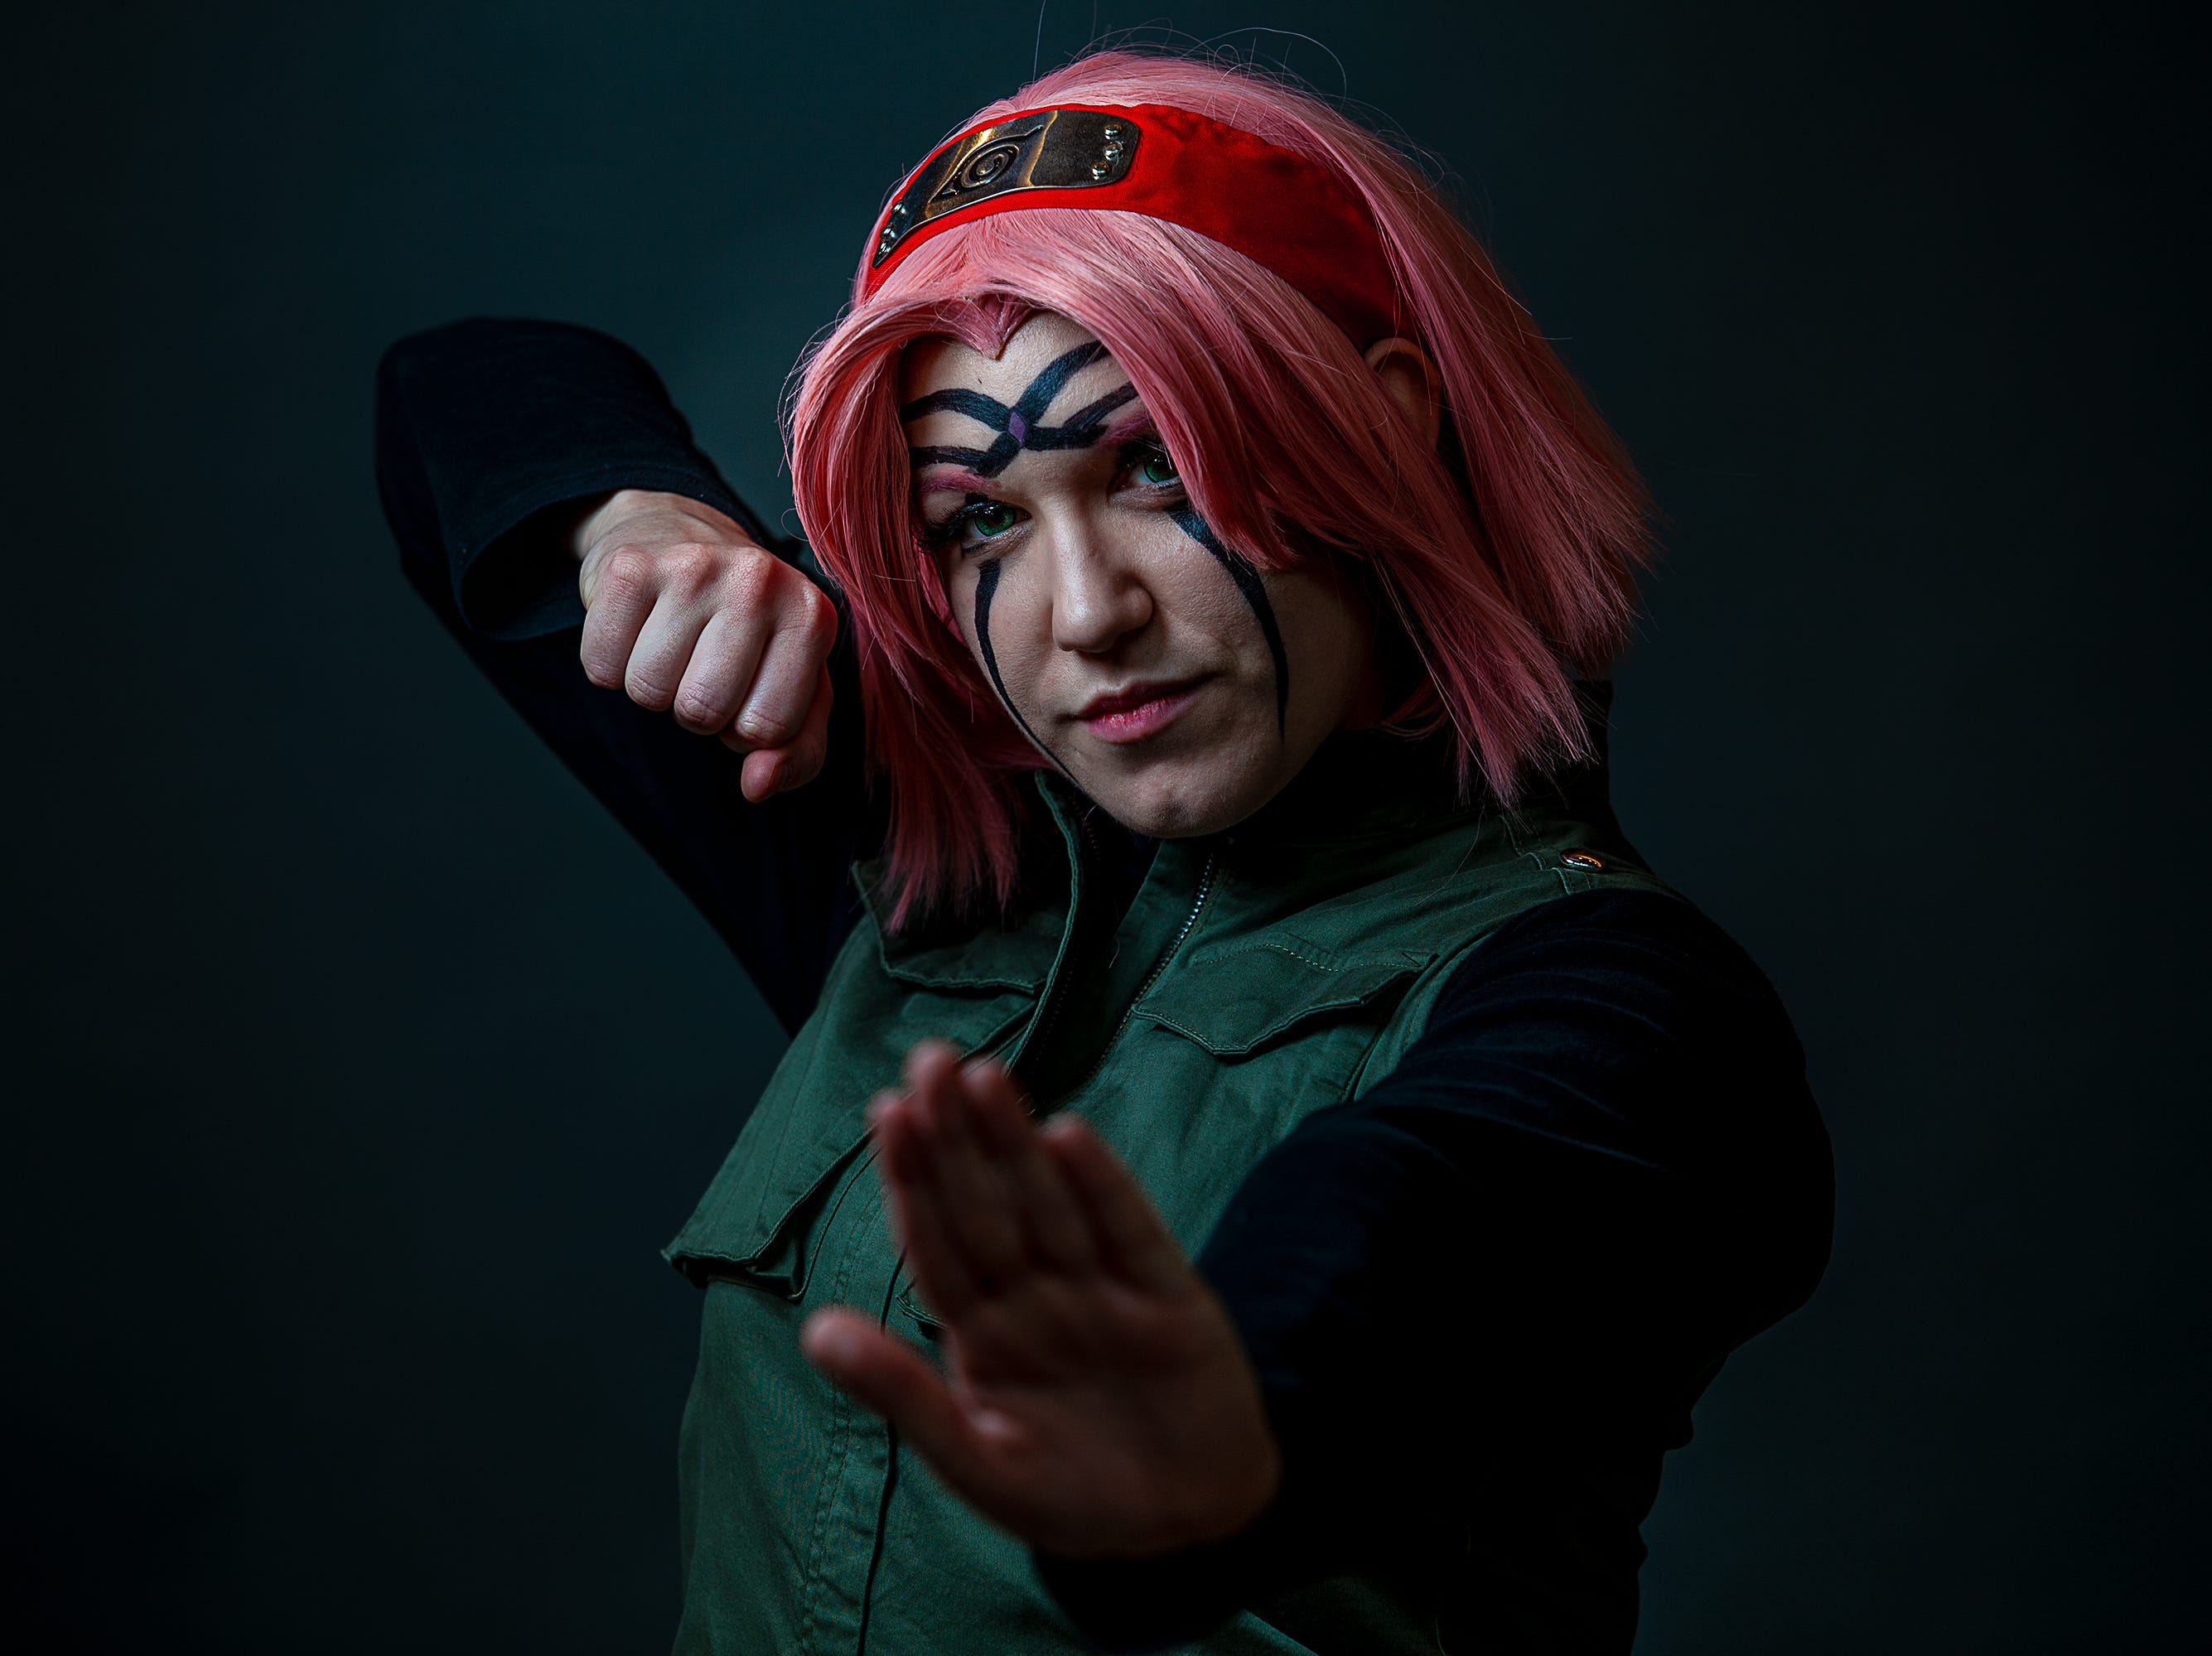 Amanda Fitzgerald poses as Sakura Haruno for the Louisville Supercon at the Kentucky International Convention Center on Friday, Nov. 30, 2018.